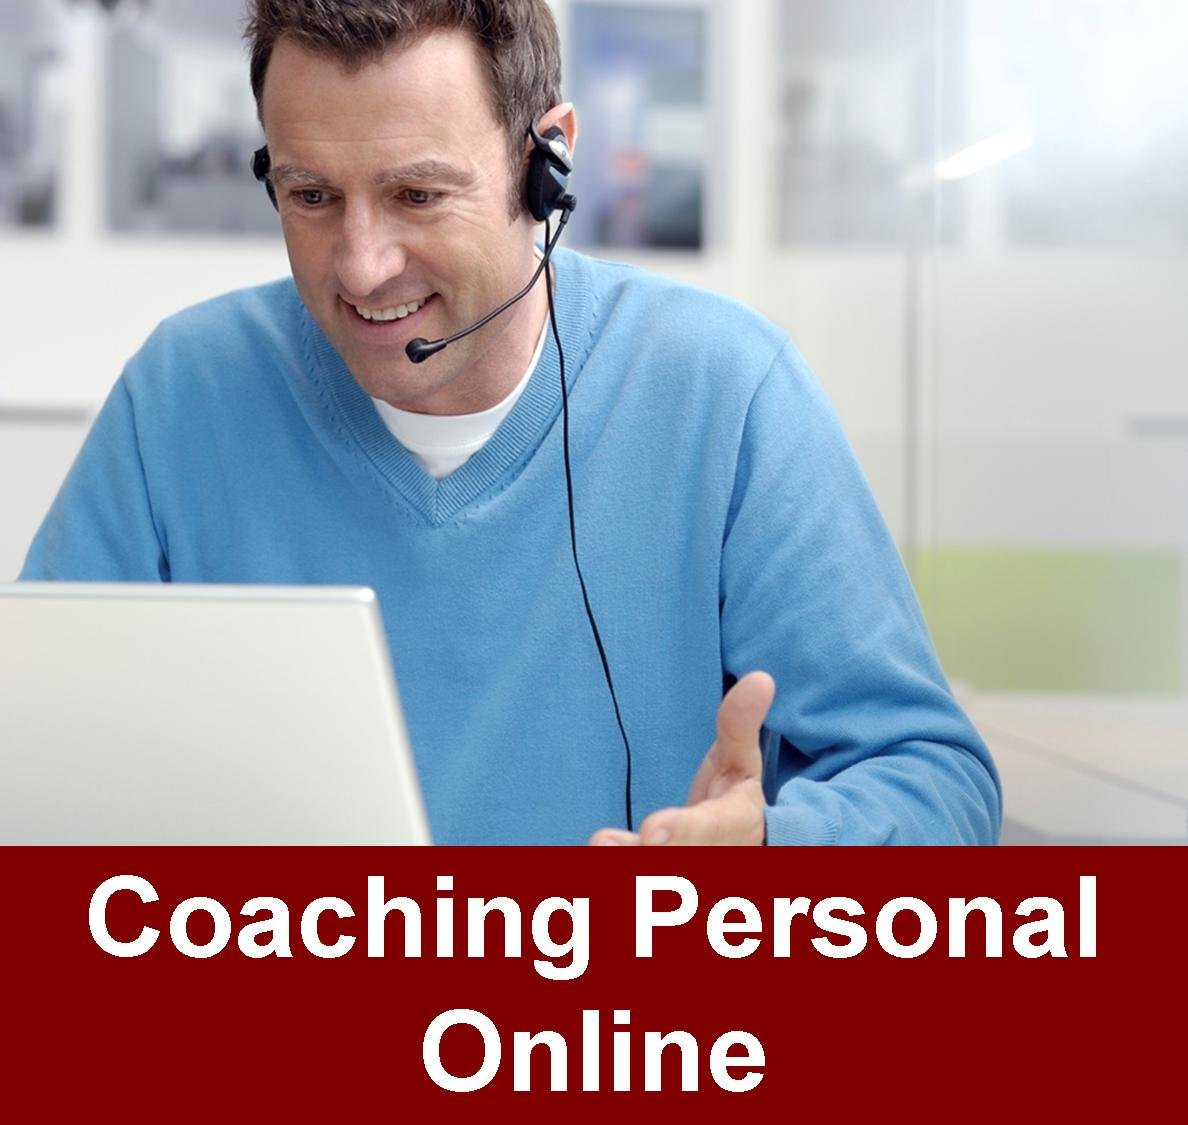 online dating personal coach The match maven is your personal online dating coach online dating can be overwhelming so, stop staring at your computer screen and call your friend.